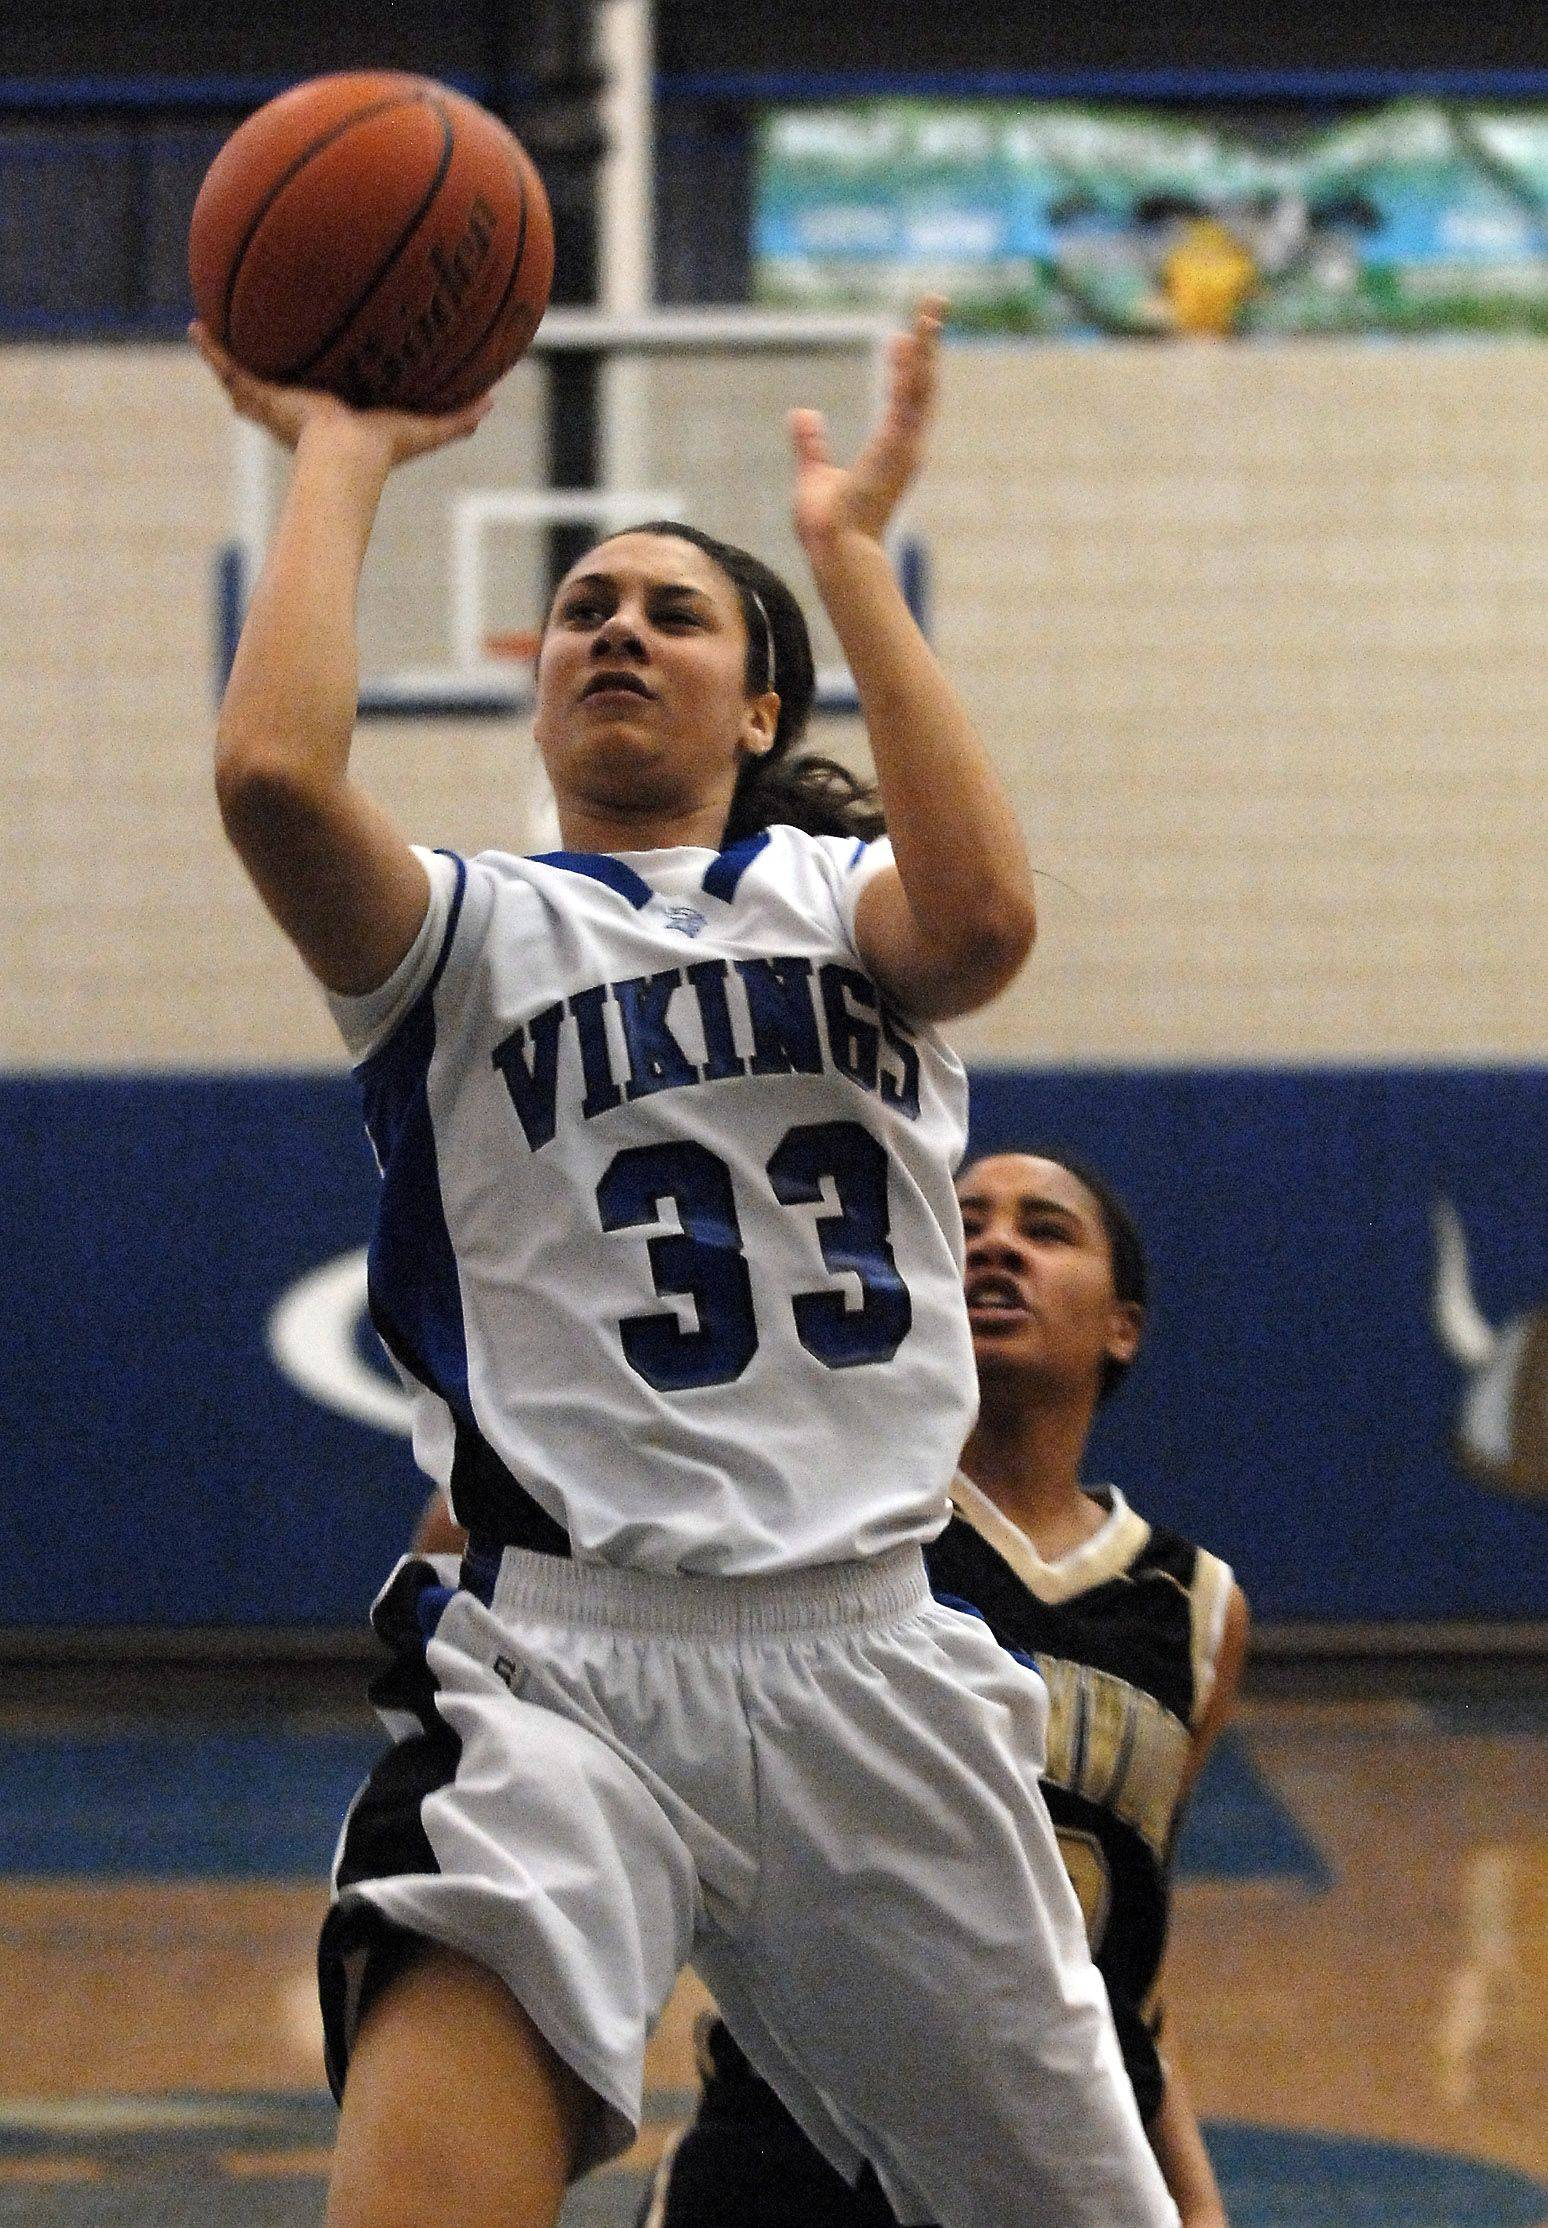 Geneva junior Ashley Santos has committed to Marquette to play college basketball.